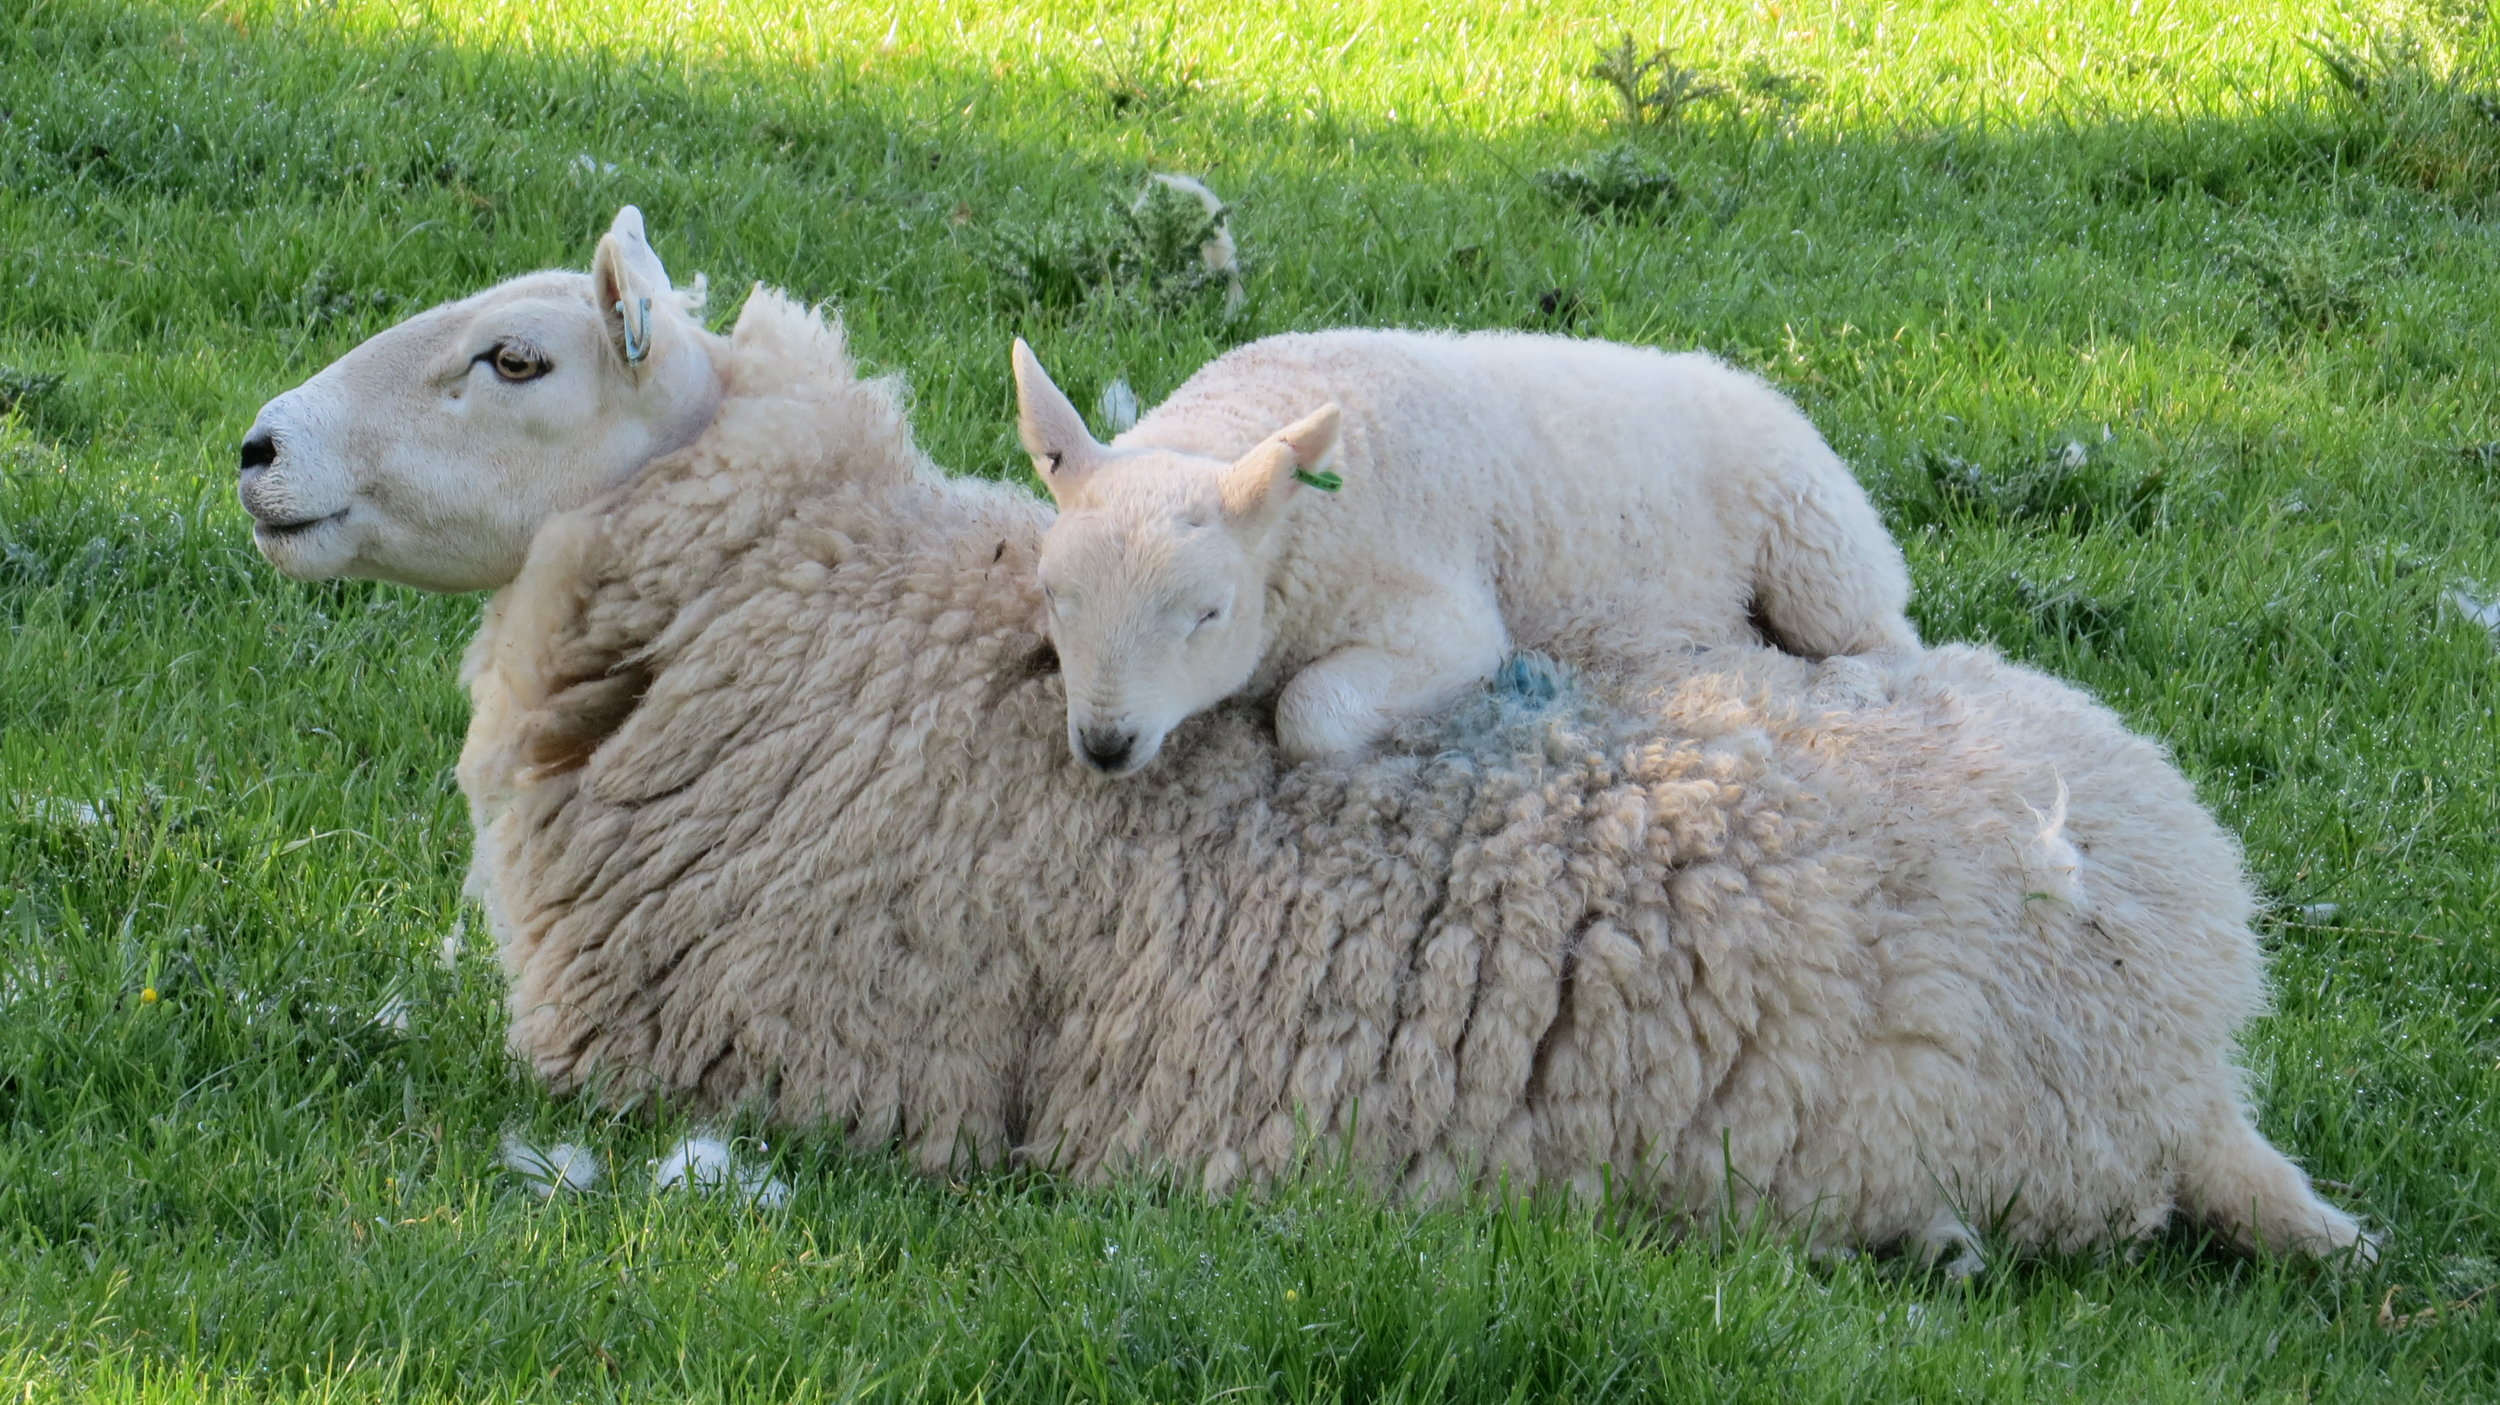 Can I sleep on Ewe